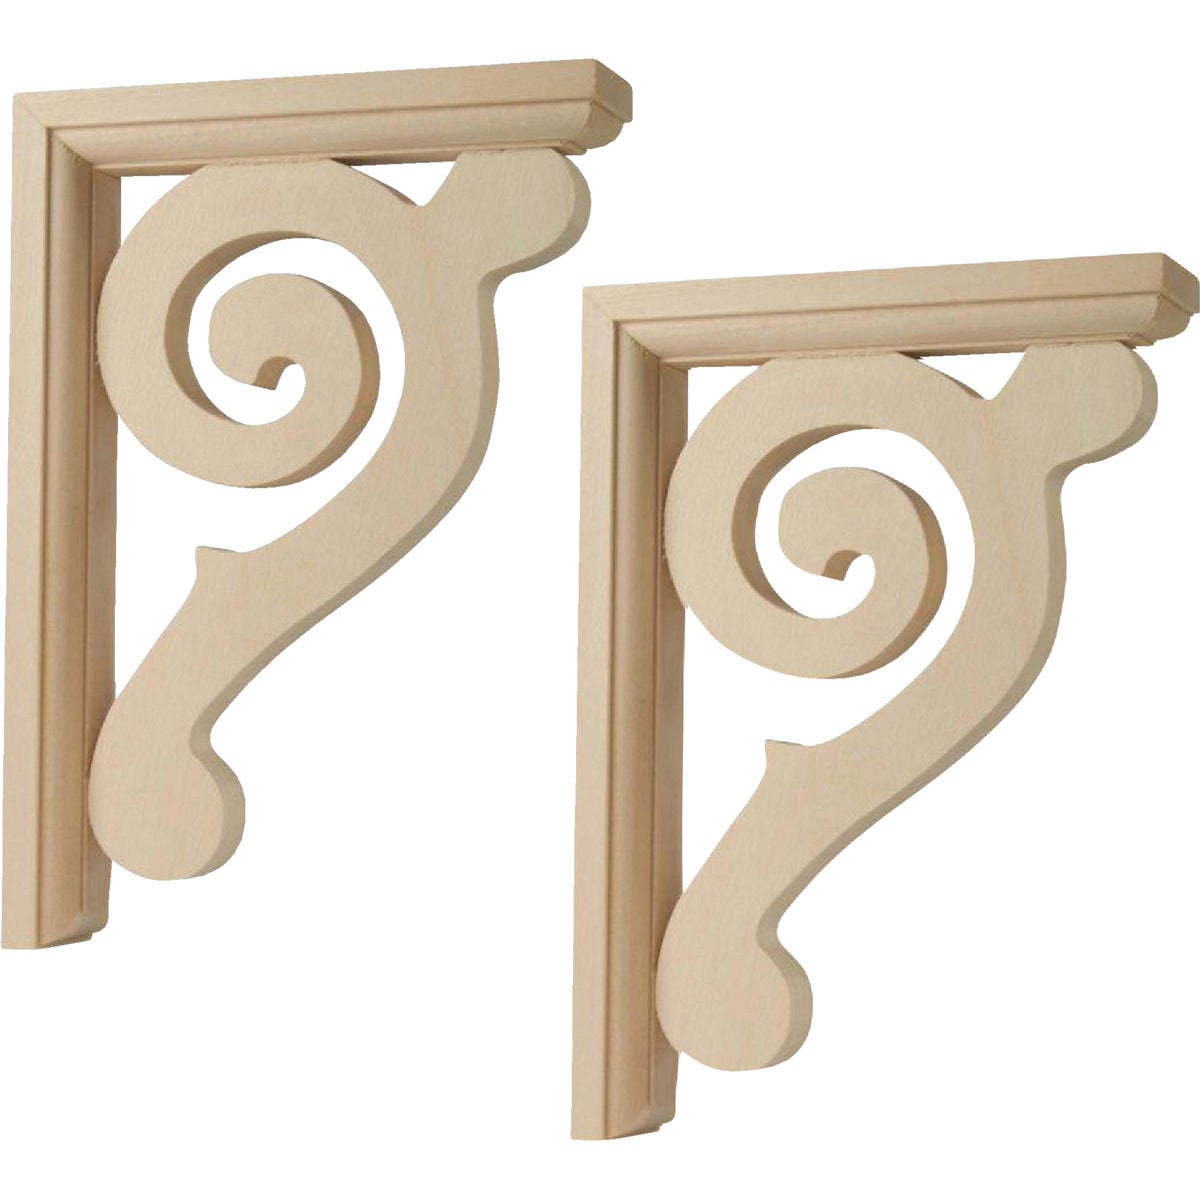 2PK SCROLL CORBEL - CB618/CR77 by Waddell Mfg Company